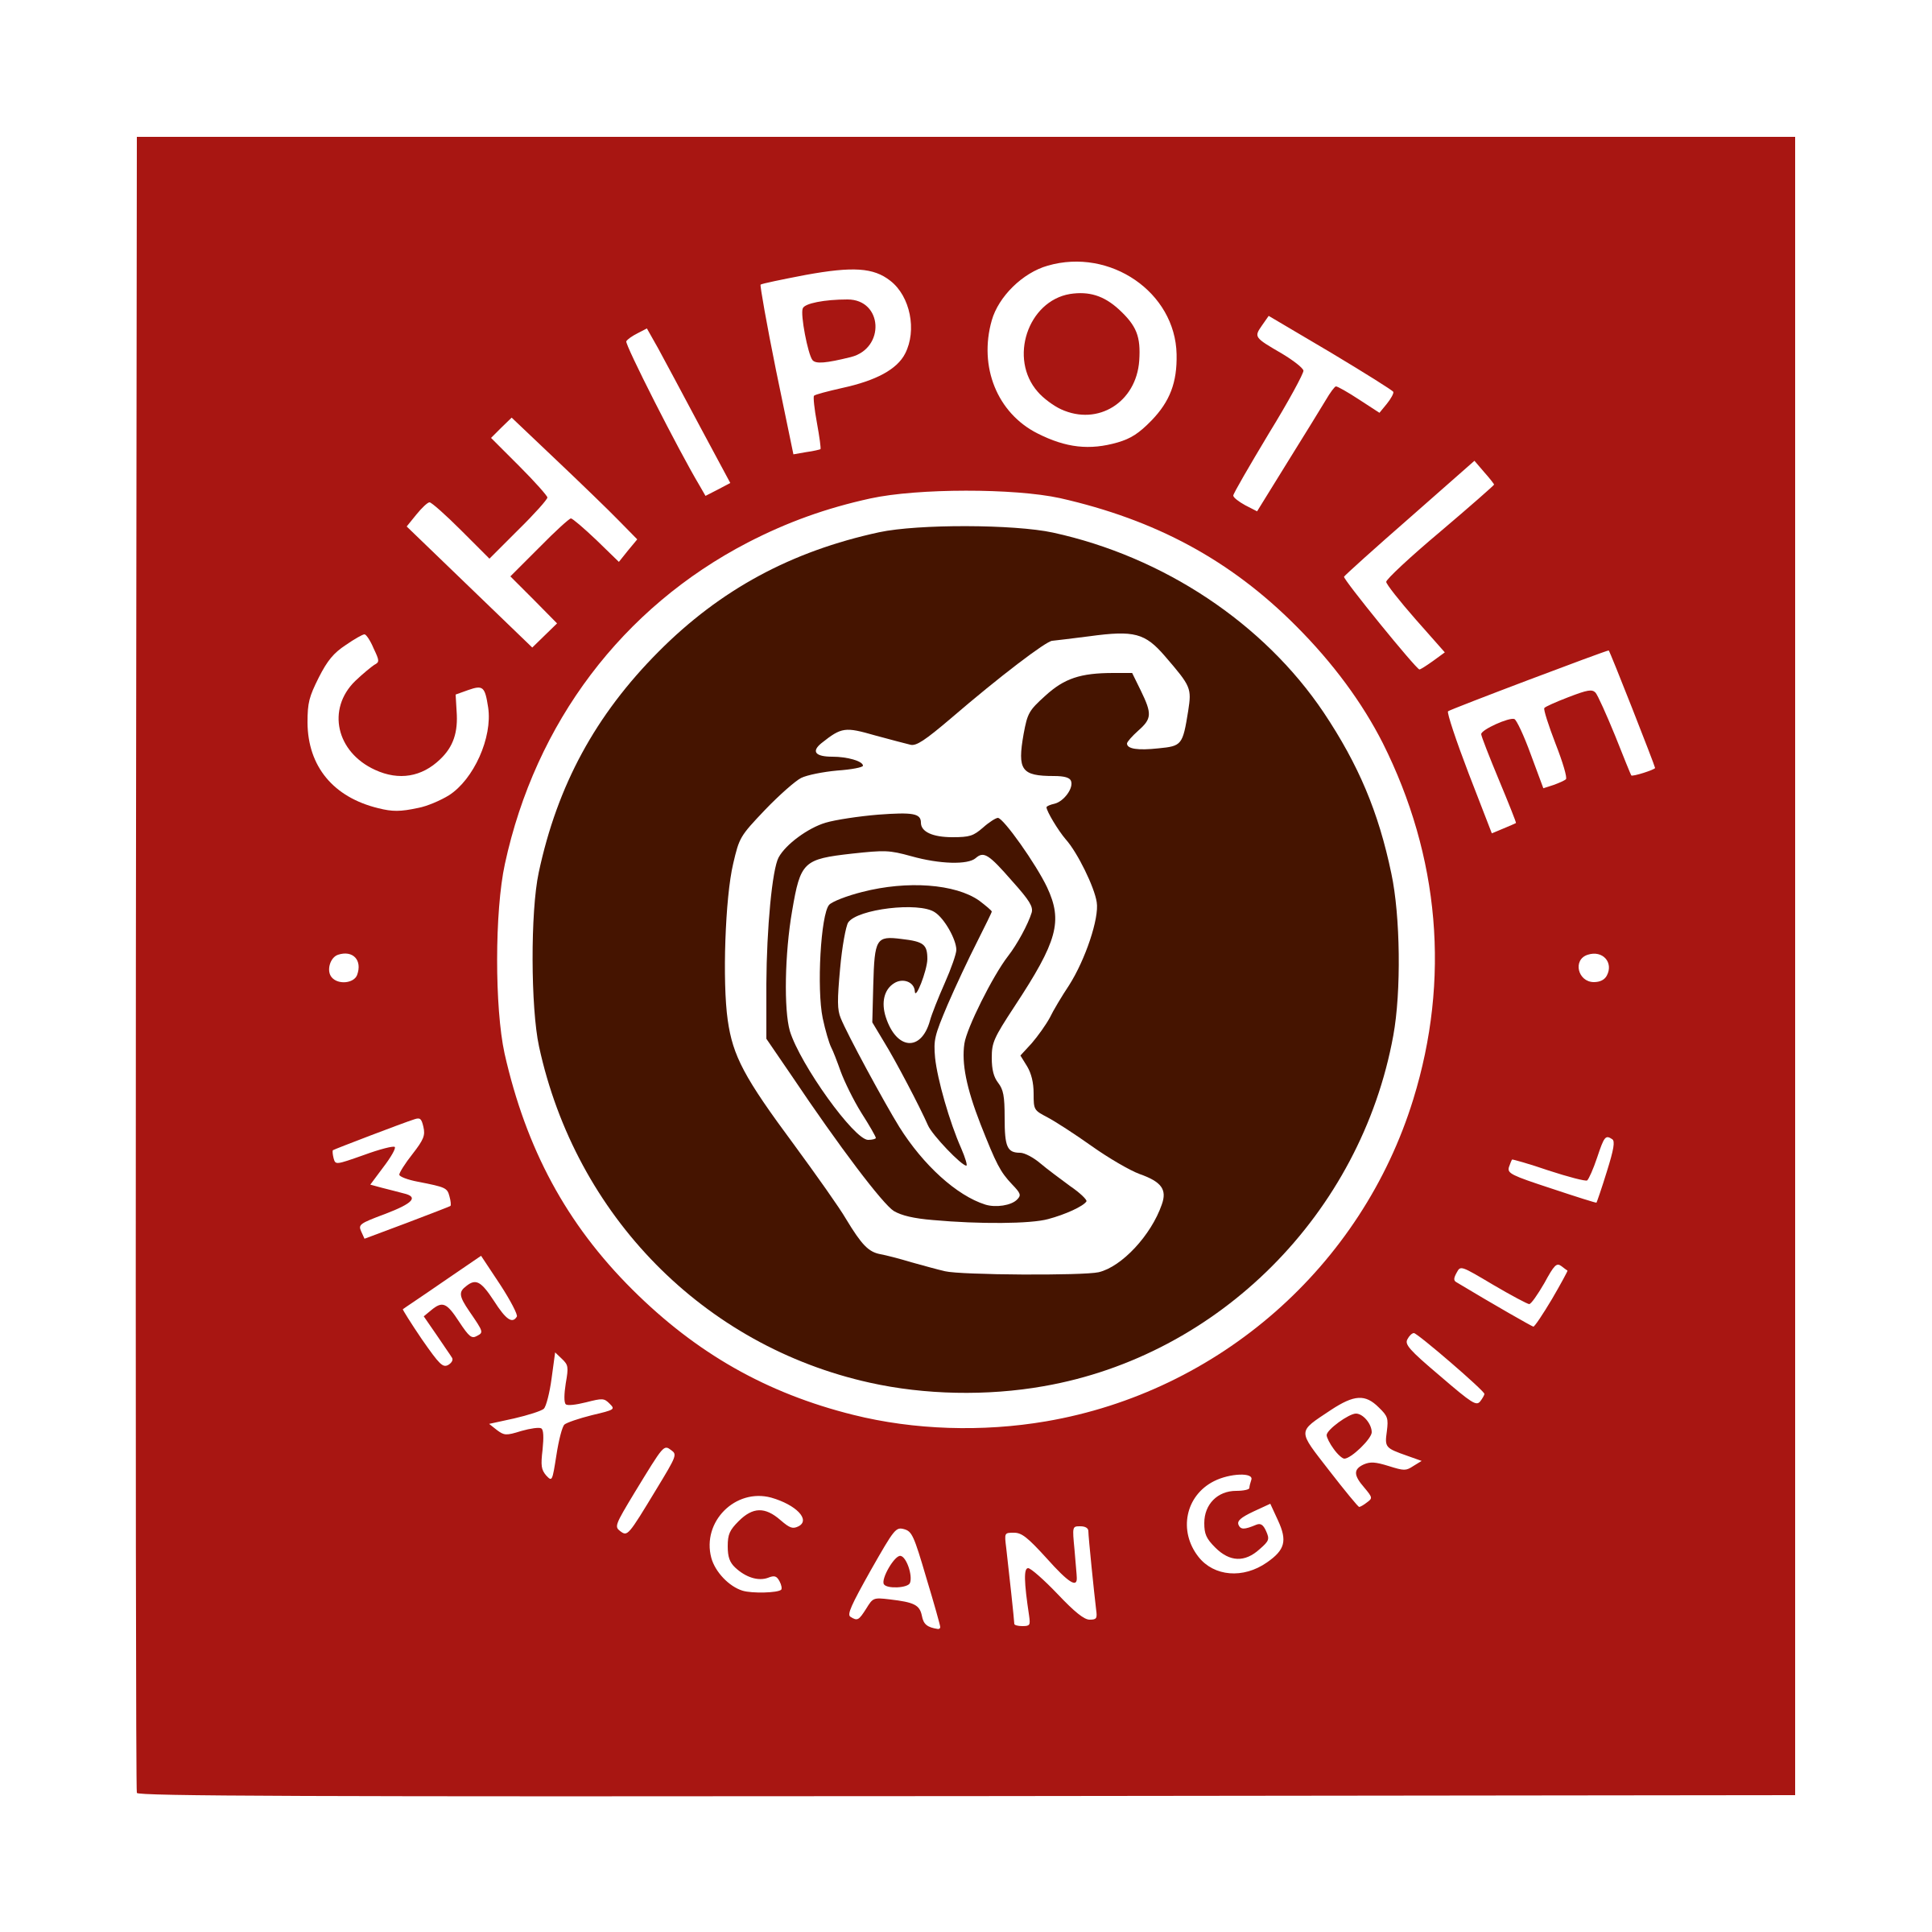 Chipotle Logo PNG Transparent & SVG Vector.